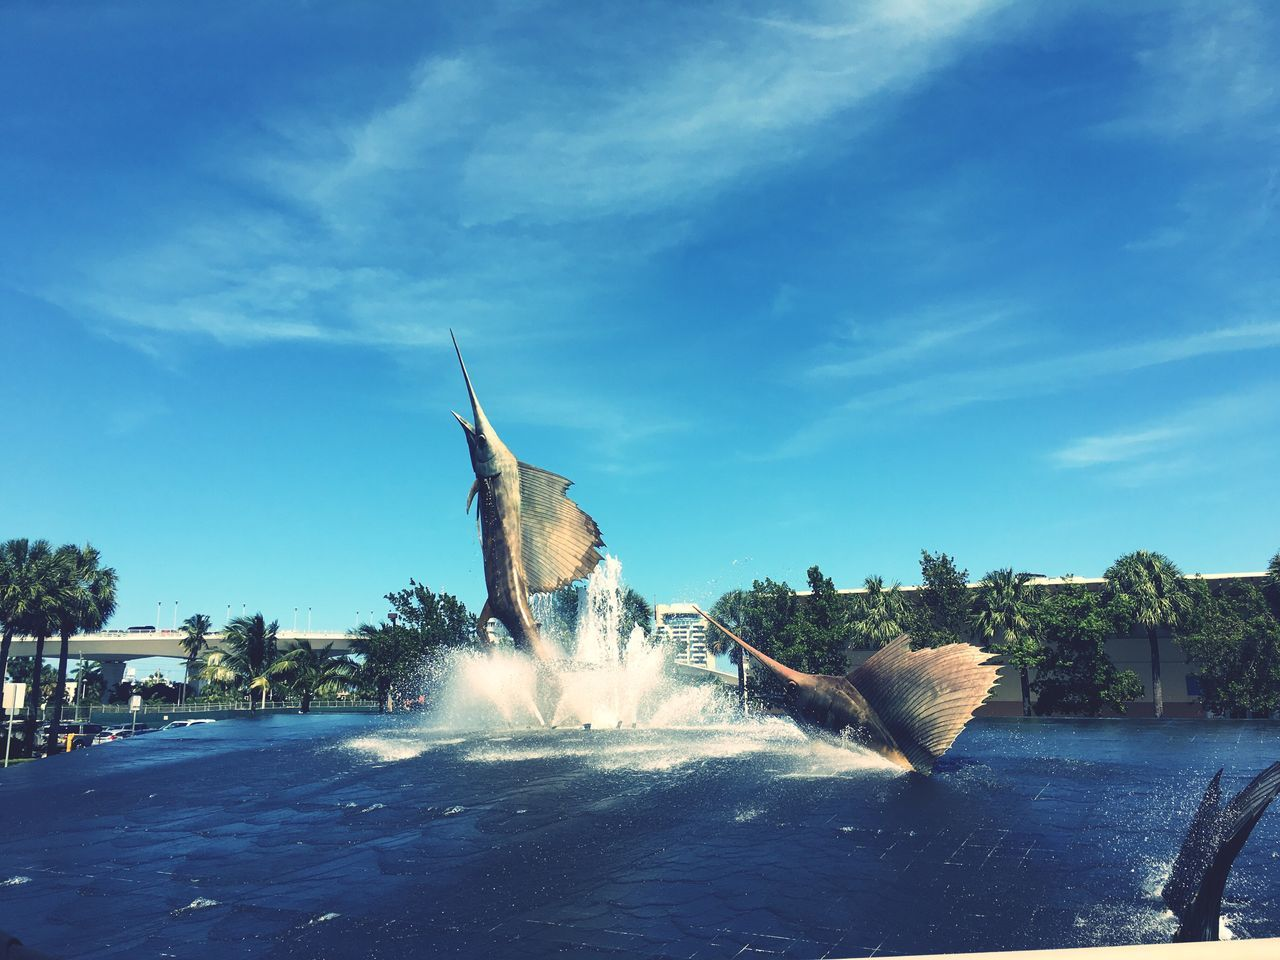 Blue Wave Fountain Landmark Ft Lauderdale Conventioncenter Swordfish Statue Blue Sky